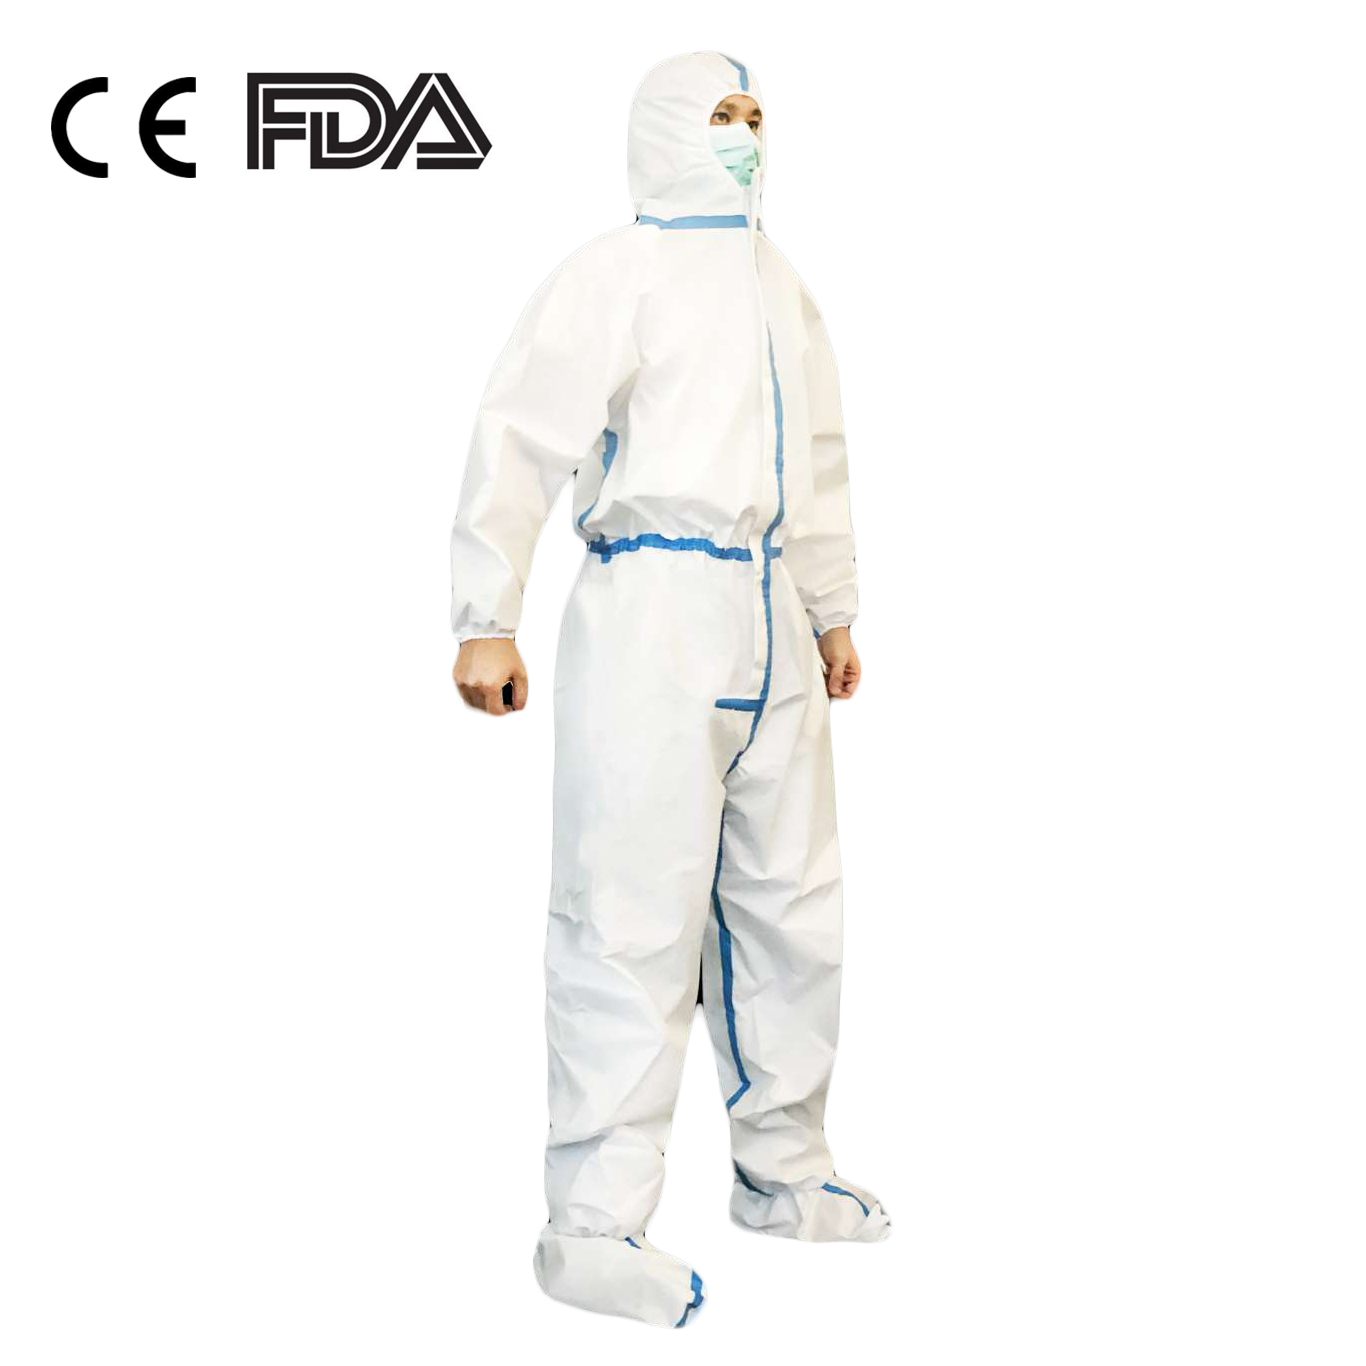 Civil Virus Coverall Suit Protects Disposable Hospital Safety Suit